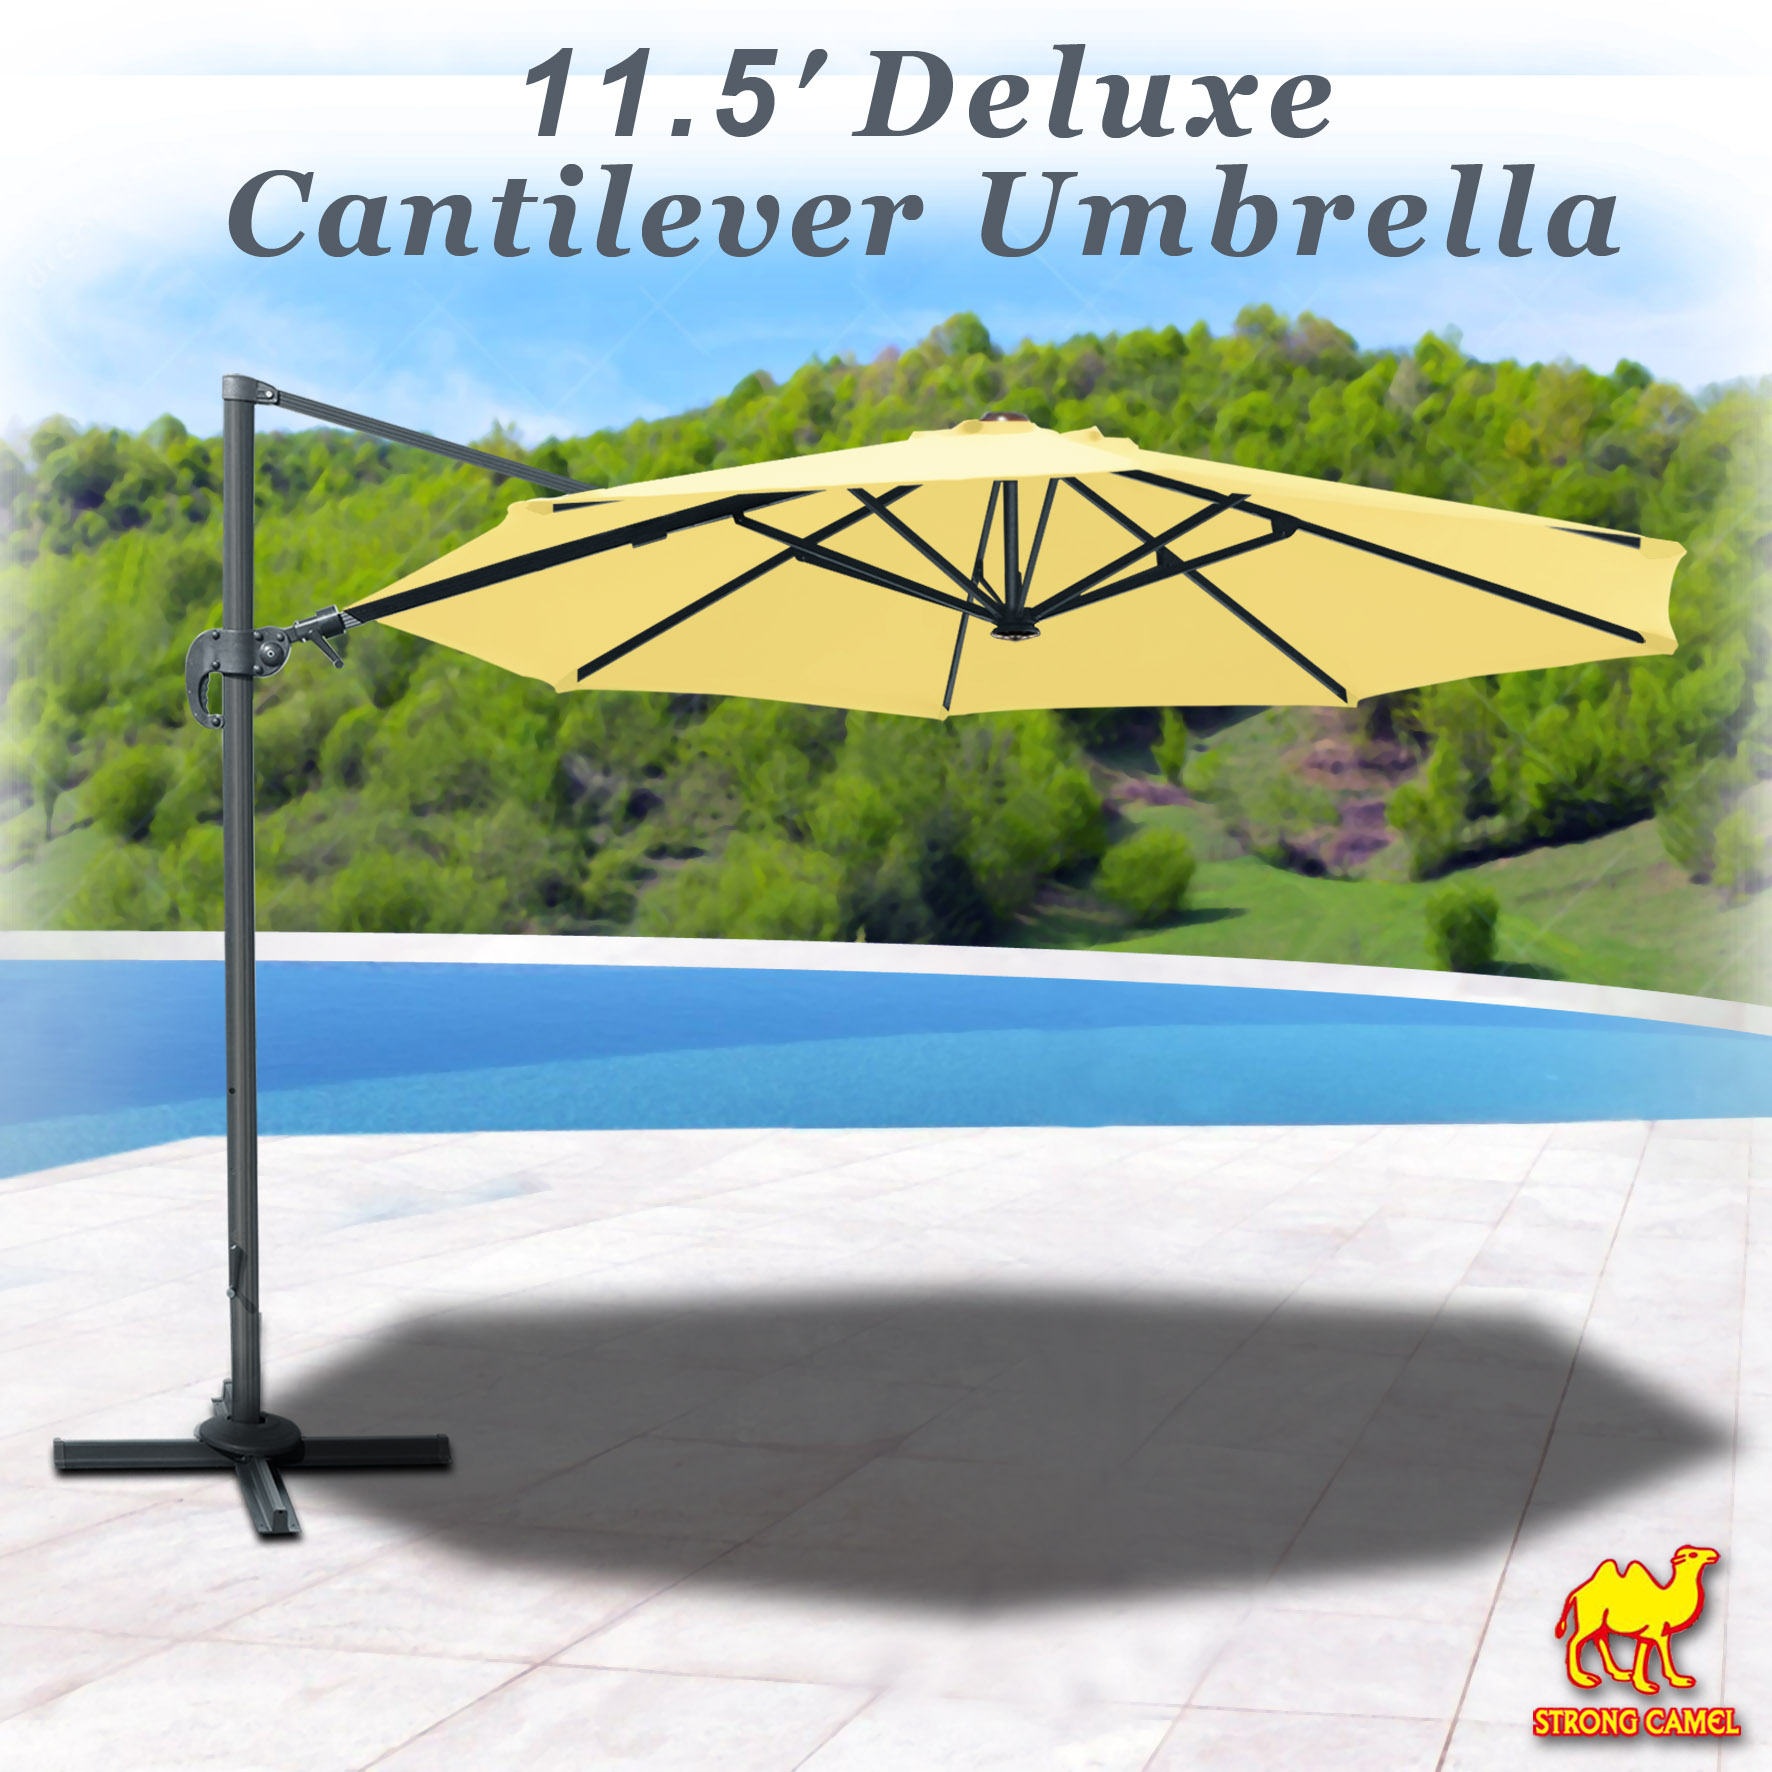 Strong Camel 11.5' Off-Set Hanging Roma Umbrella Deluxe Patio Umbrella Tilt & 360 Rotation Patio Heavyduty Outdoor Sunshade Cantilever Crank(Steel Cross Base is Included)